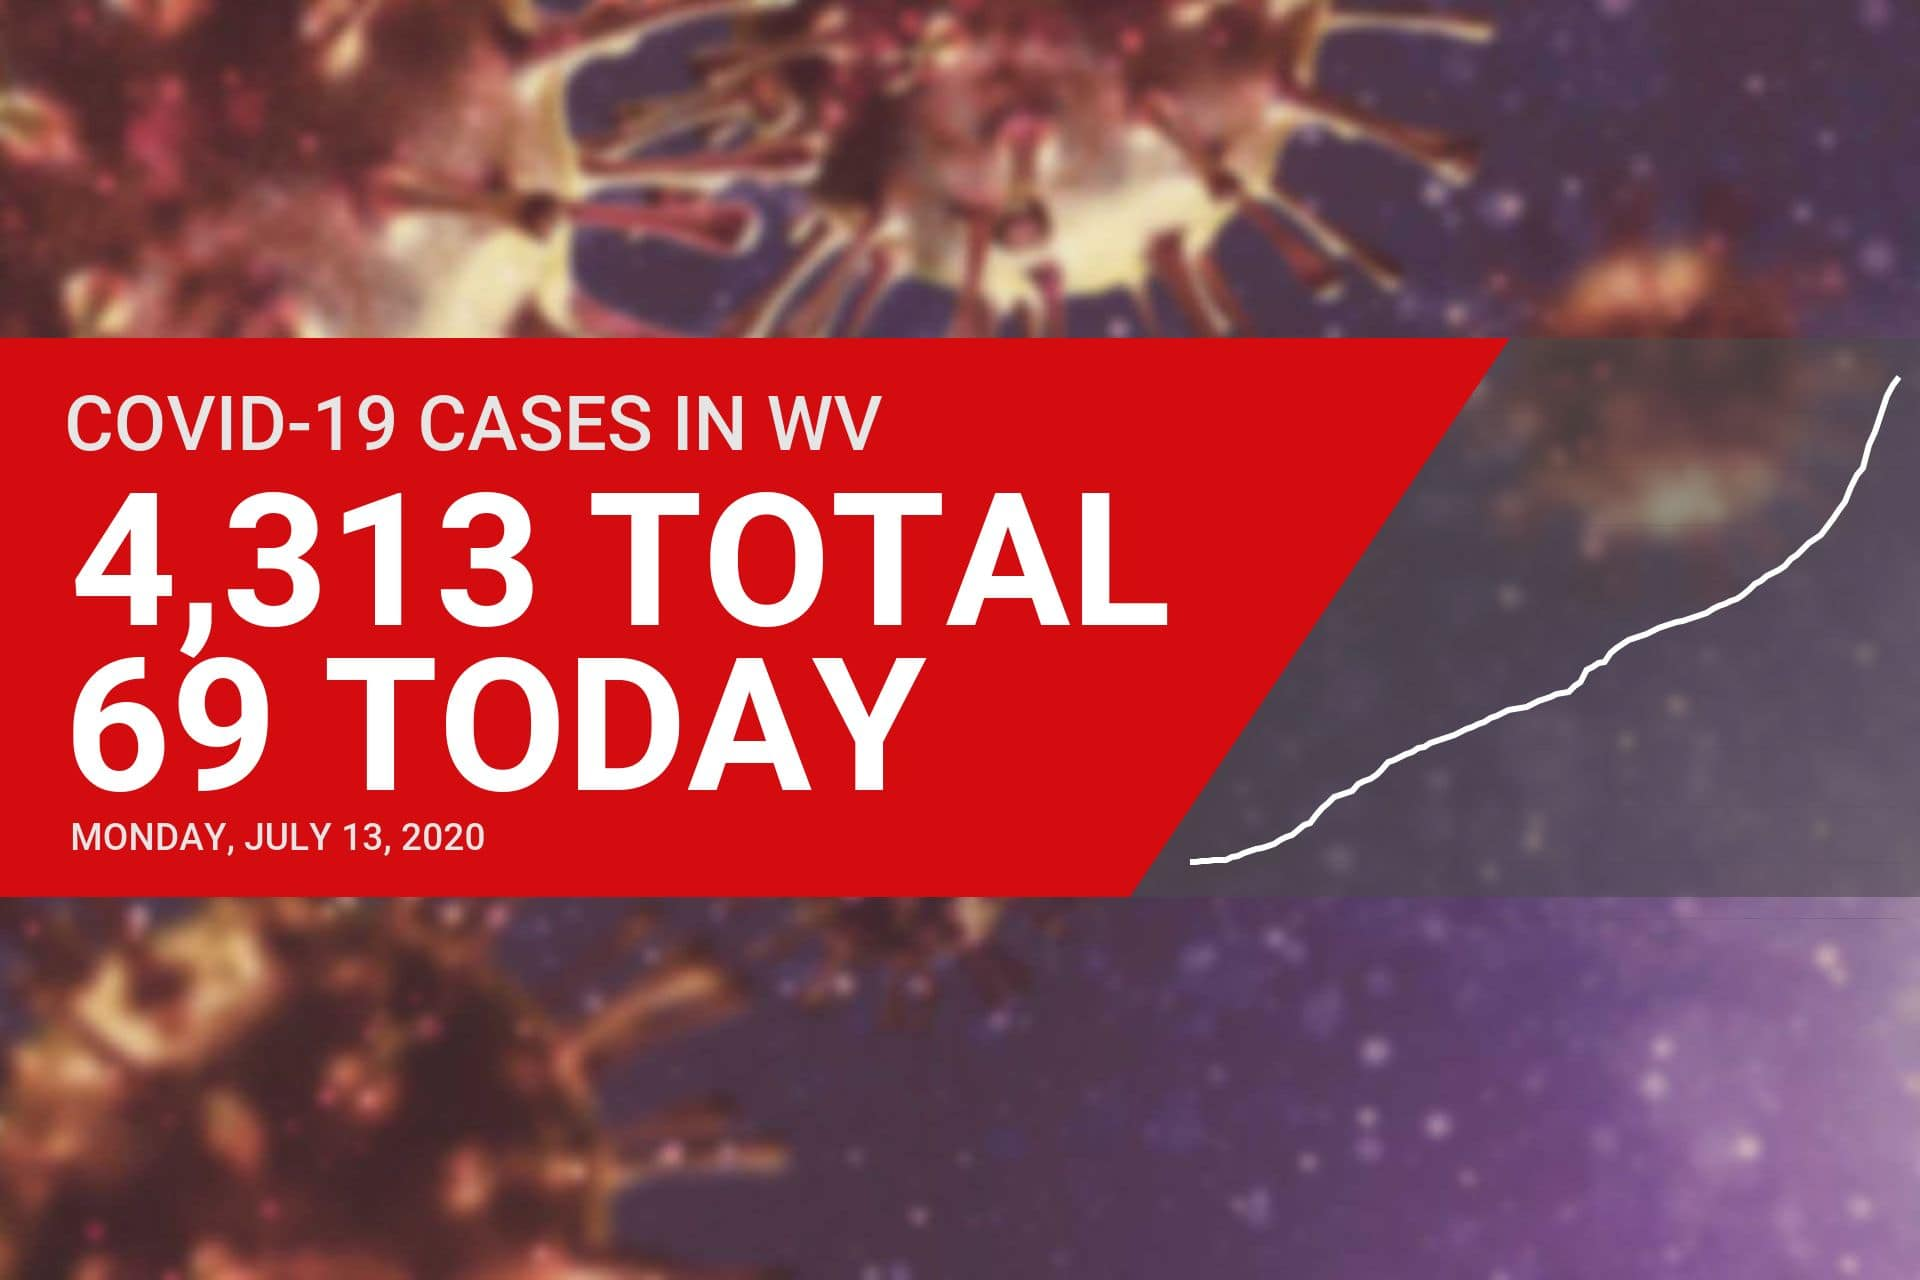 More new COVID-19 cases reported in Upshur County on Monday, one person in ICU